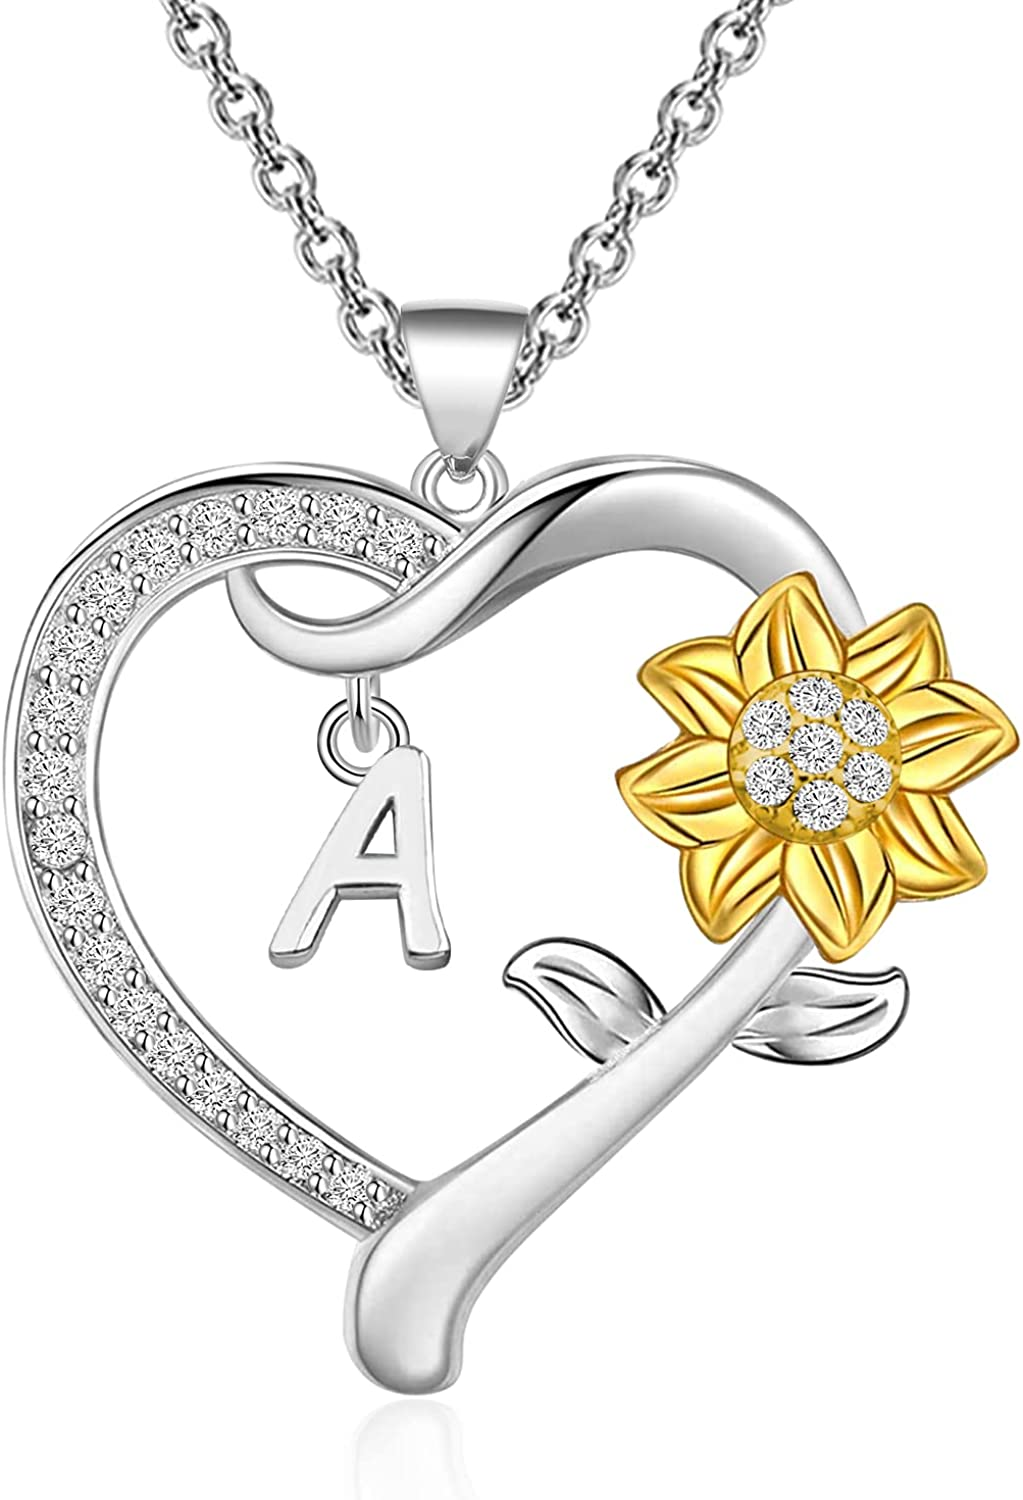 PENQI Sunflower Necklace A-Z 26 Letters Pendant Necklace Sunflower Initial Jewelry Gift for Women Girls